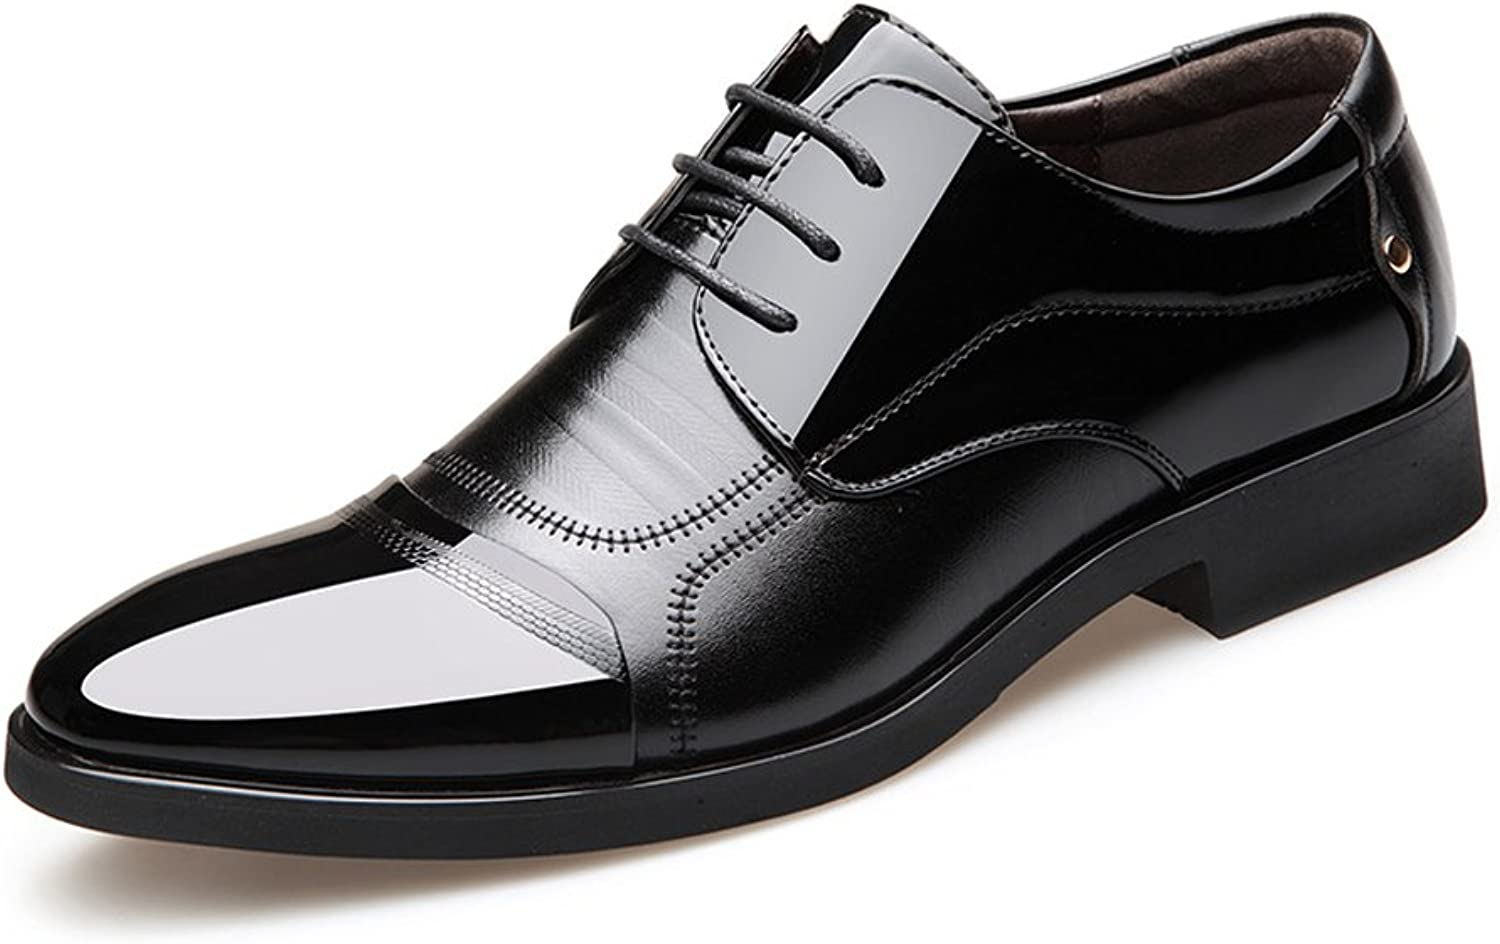 CHENXD shoes, Men's Fashion Burnished Smooth PU Leather Splice Vamp Lace Up Block Heel Lined Oxfords Formal Business shoes